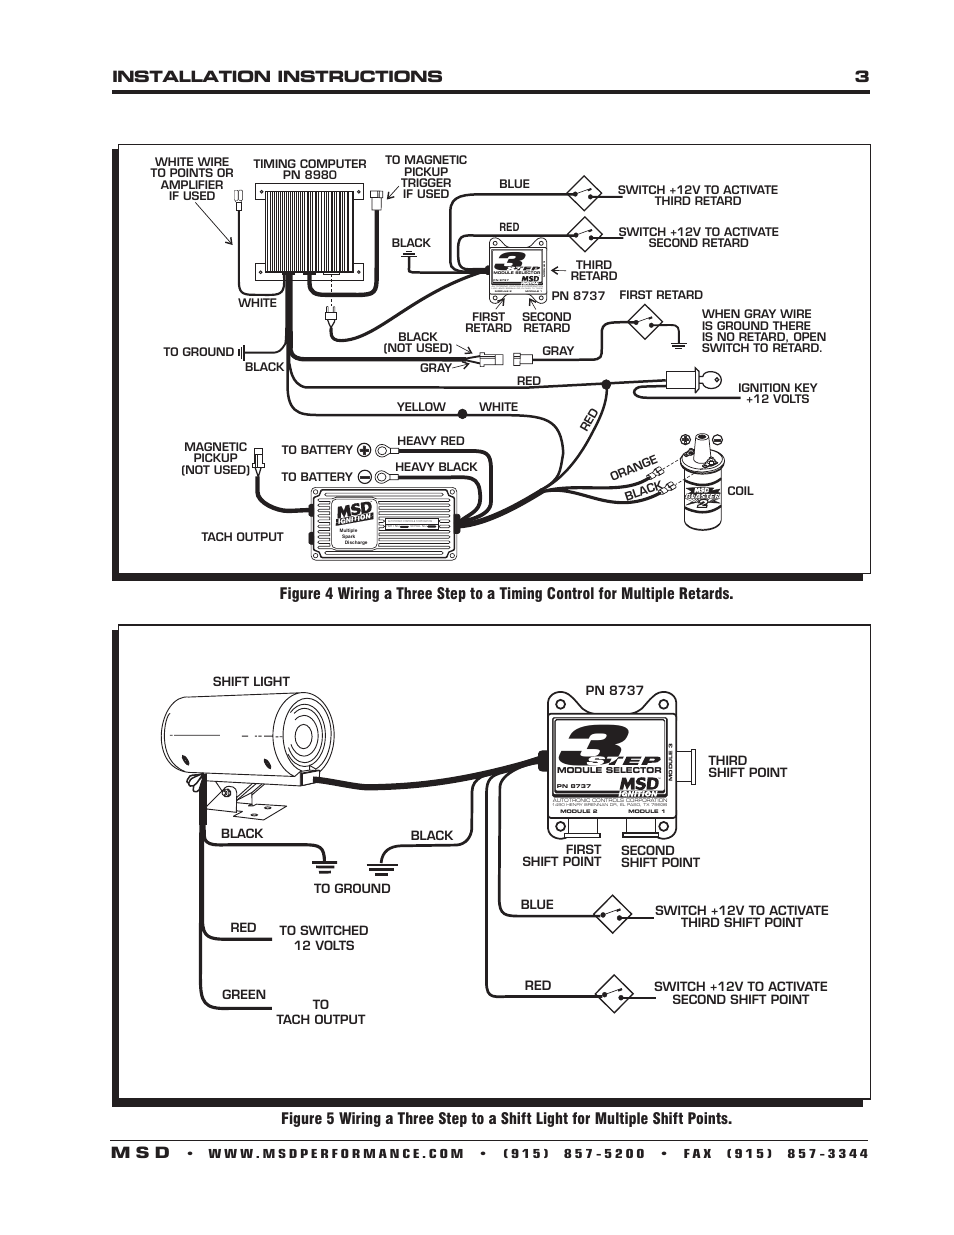 Msd Rpm Switch Wiring Diagram  Need Help For Tonight On Air Shifter 460 Ford Forum  Newest Msd